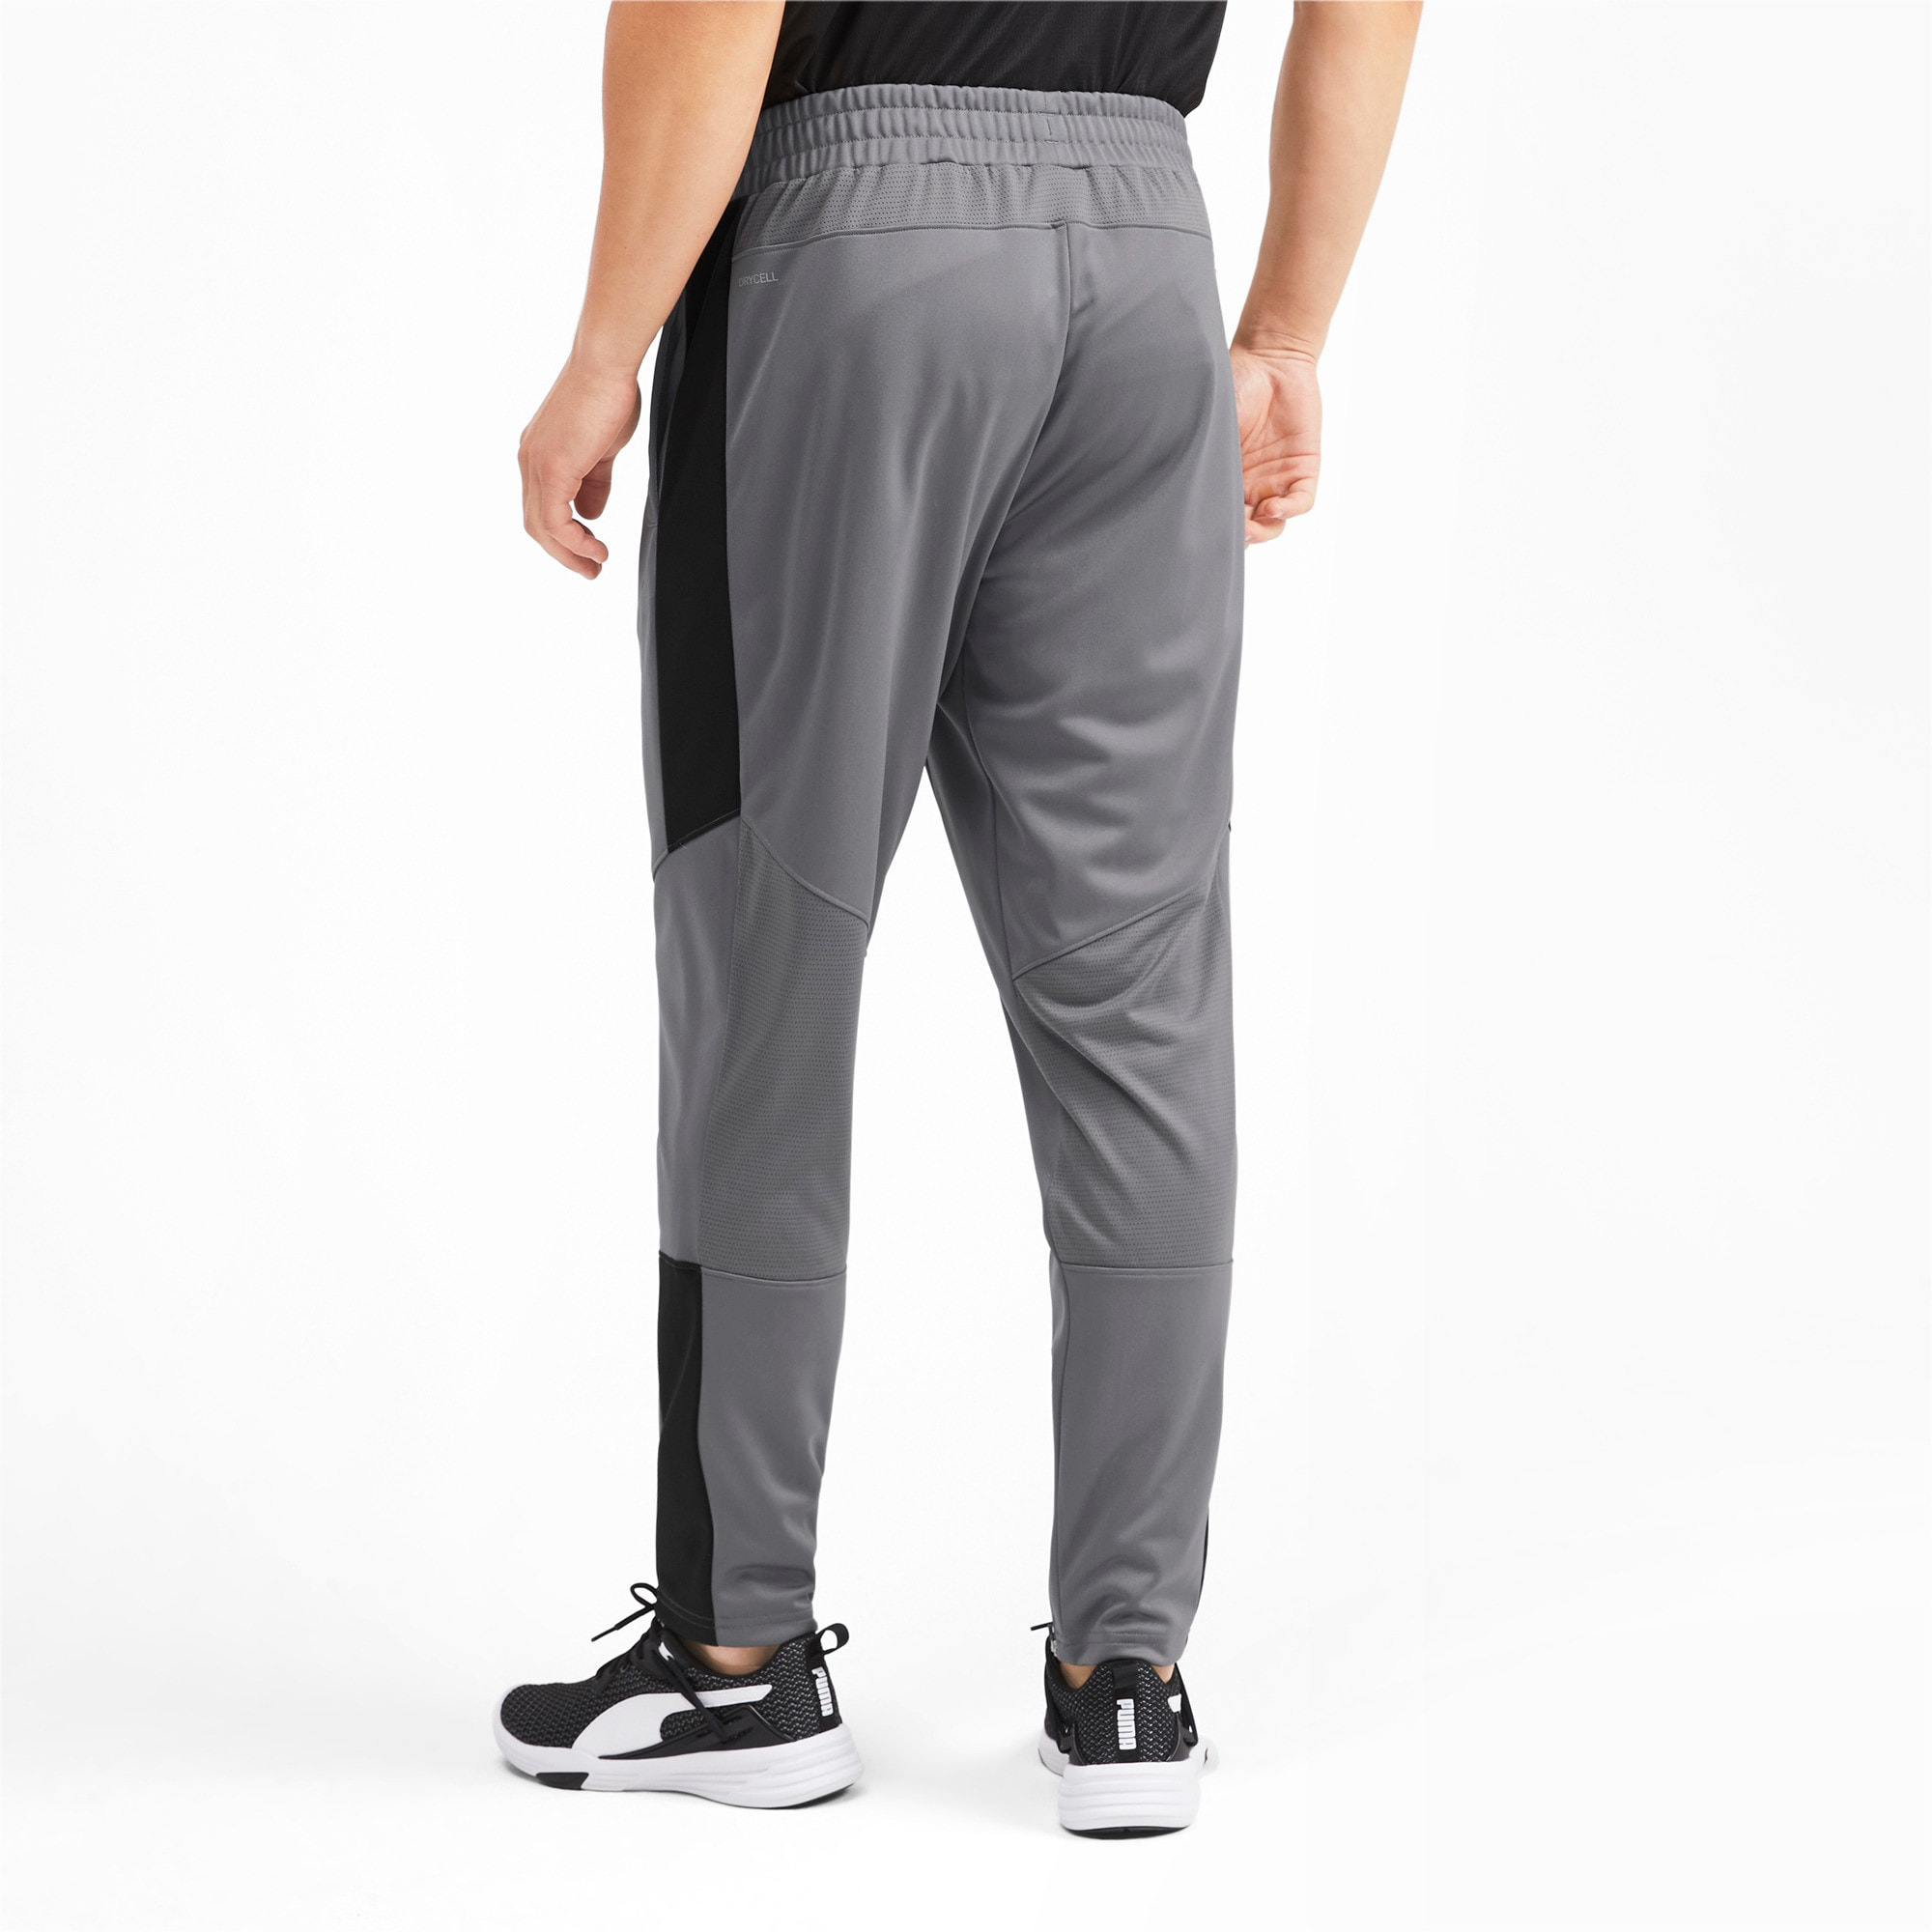 Thumbnail 3 of PUMA Blaster Men's Pants, CASTLEROCK-Puma Black, medium